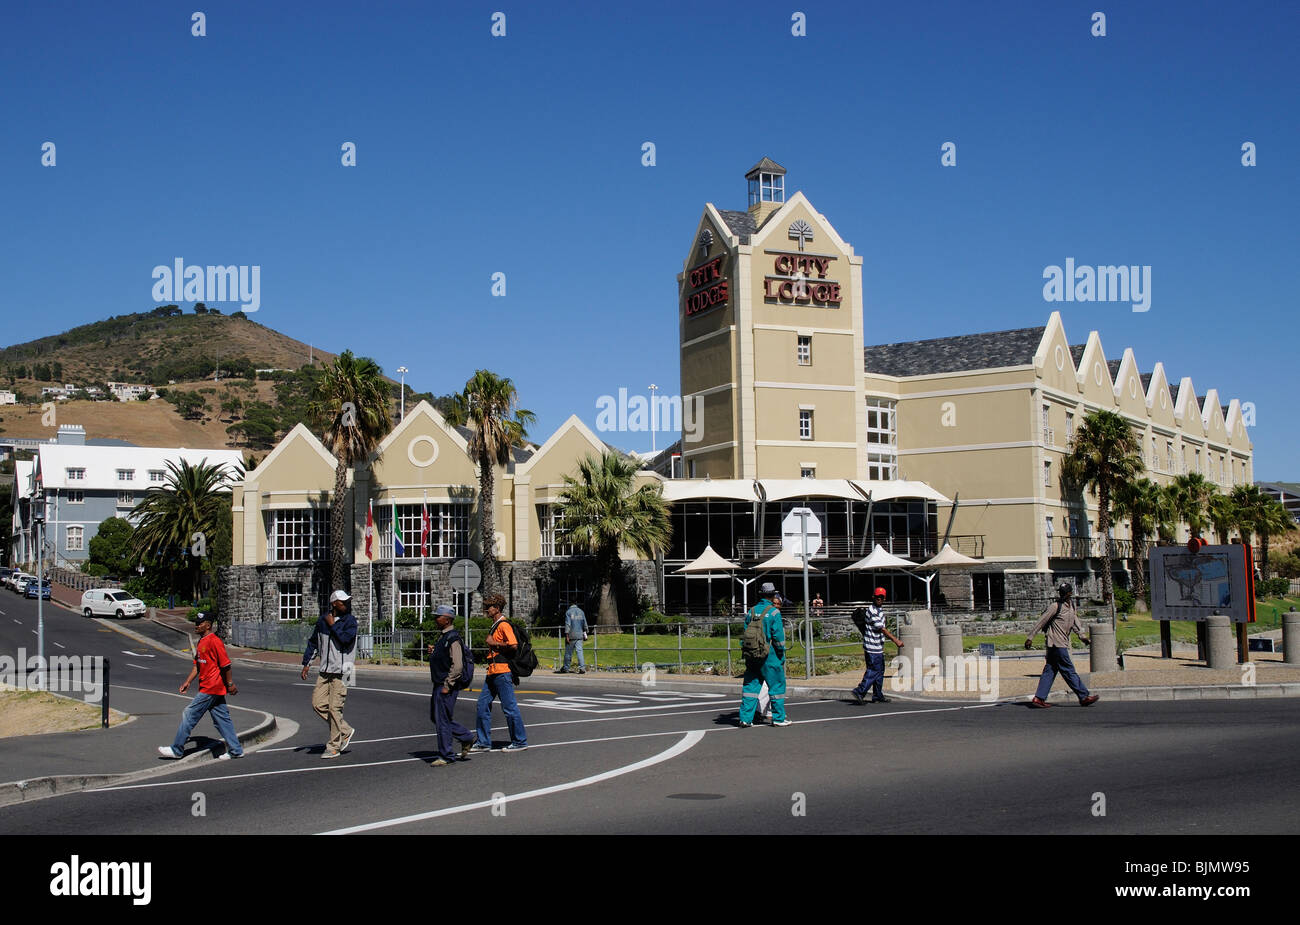 City Lodge Hotel on Dock Road at the gateway of the V&A waterfront development Cape Town South Africa - Stock Image